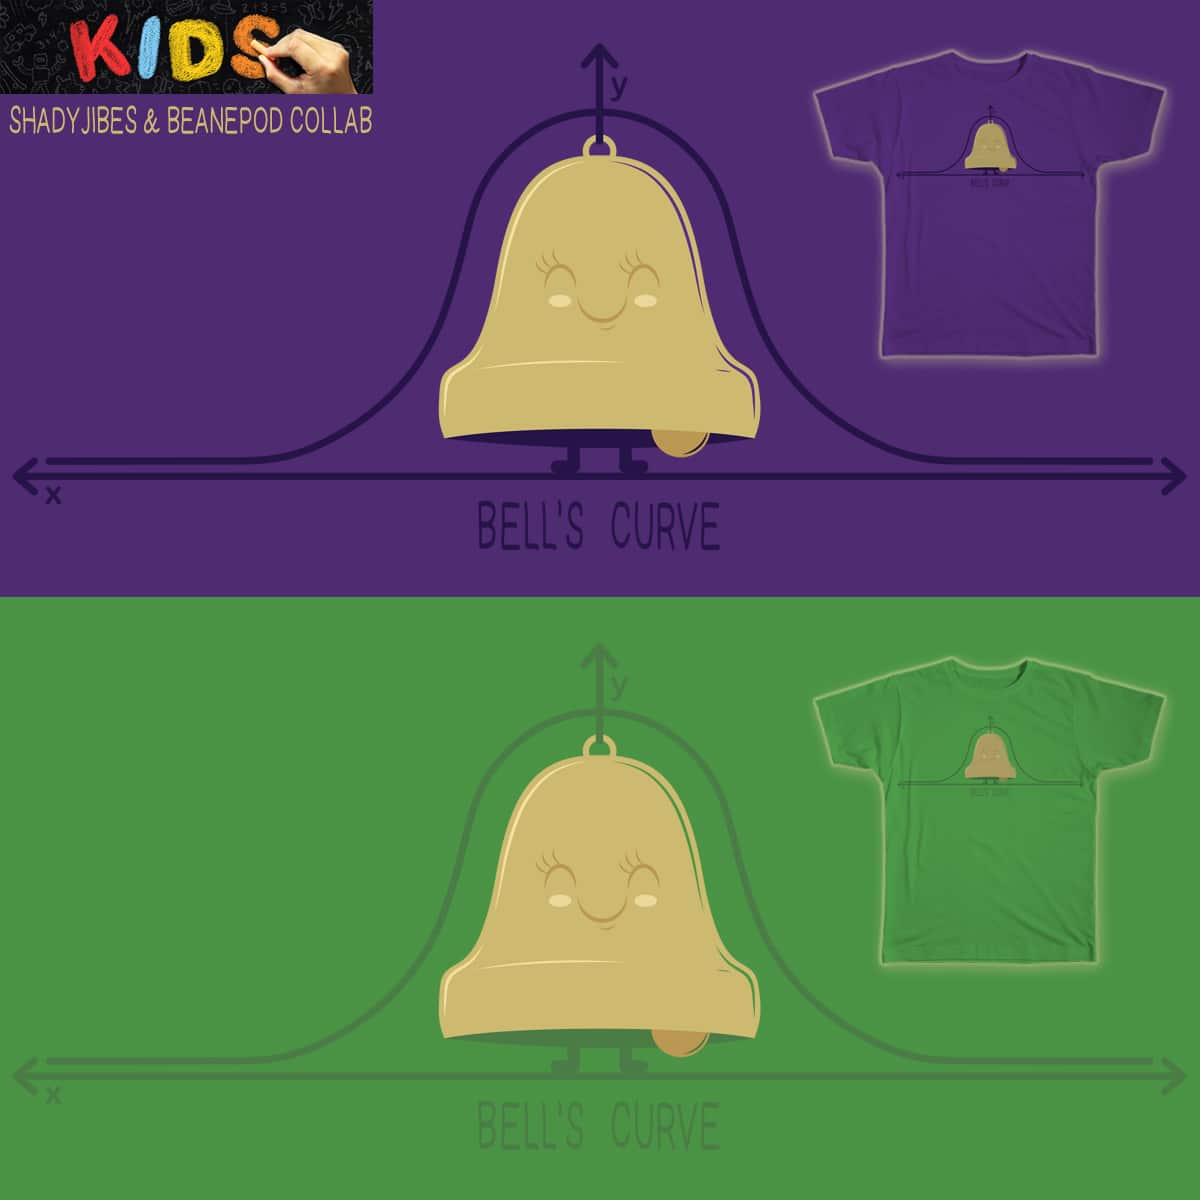 Bell's Curve by BeanePod and Shadyjibes on Threadless